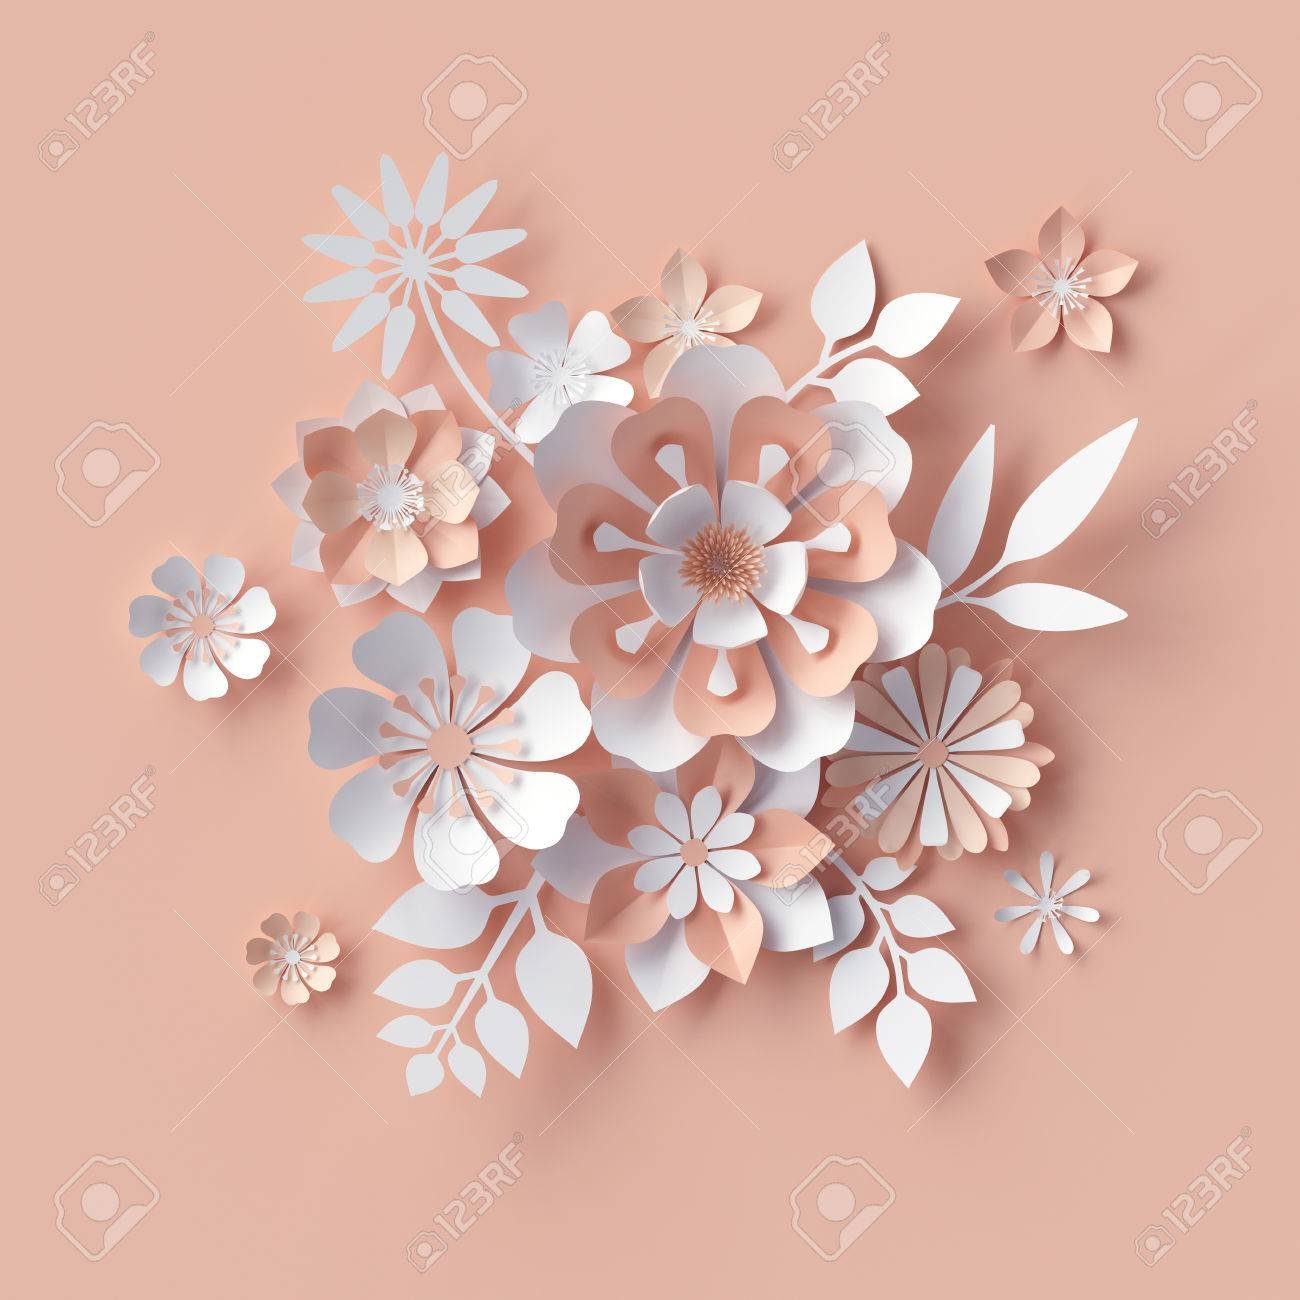 3d render abstract paper flowers decorative peach floral 3d render abstract paper flowers decorative peach floral background greeting card template mightylinksfo